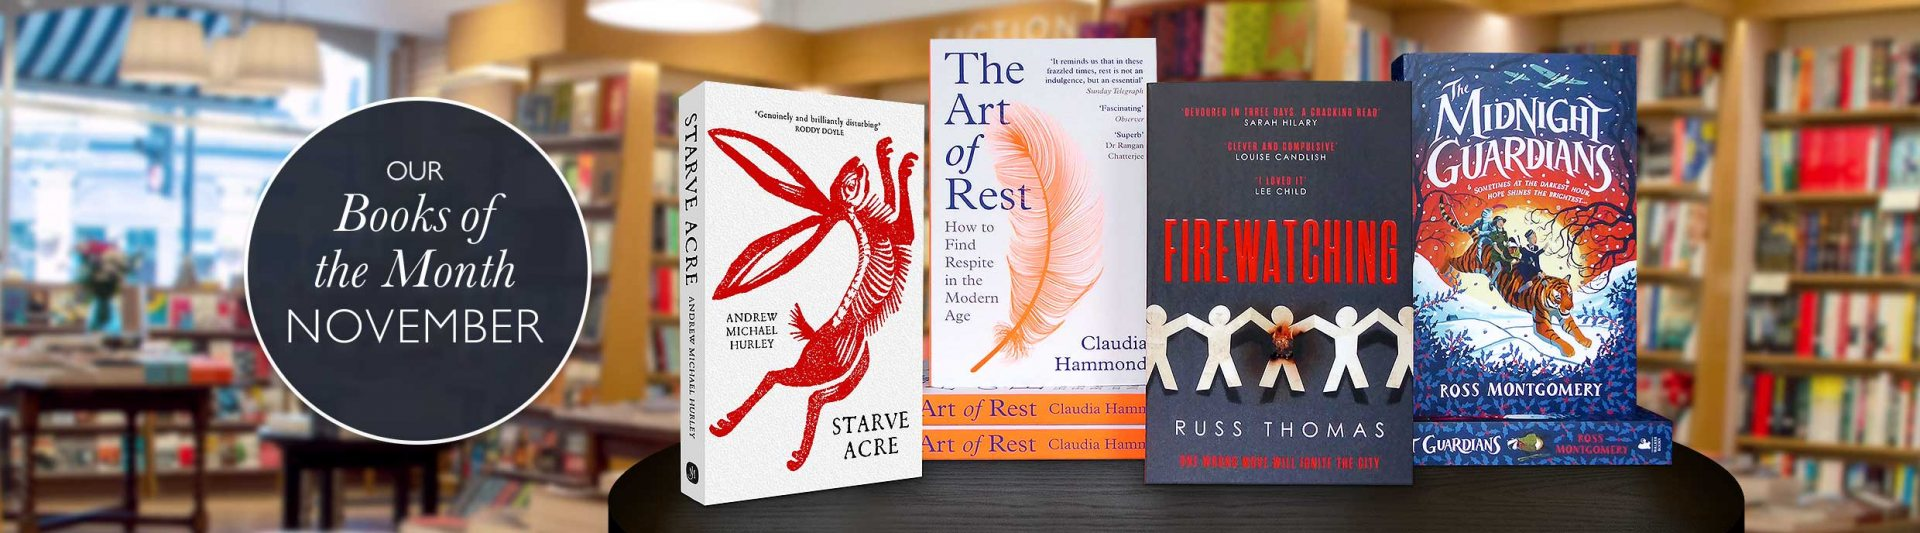 Waterstones Books of the month - November